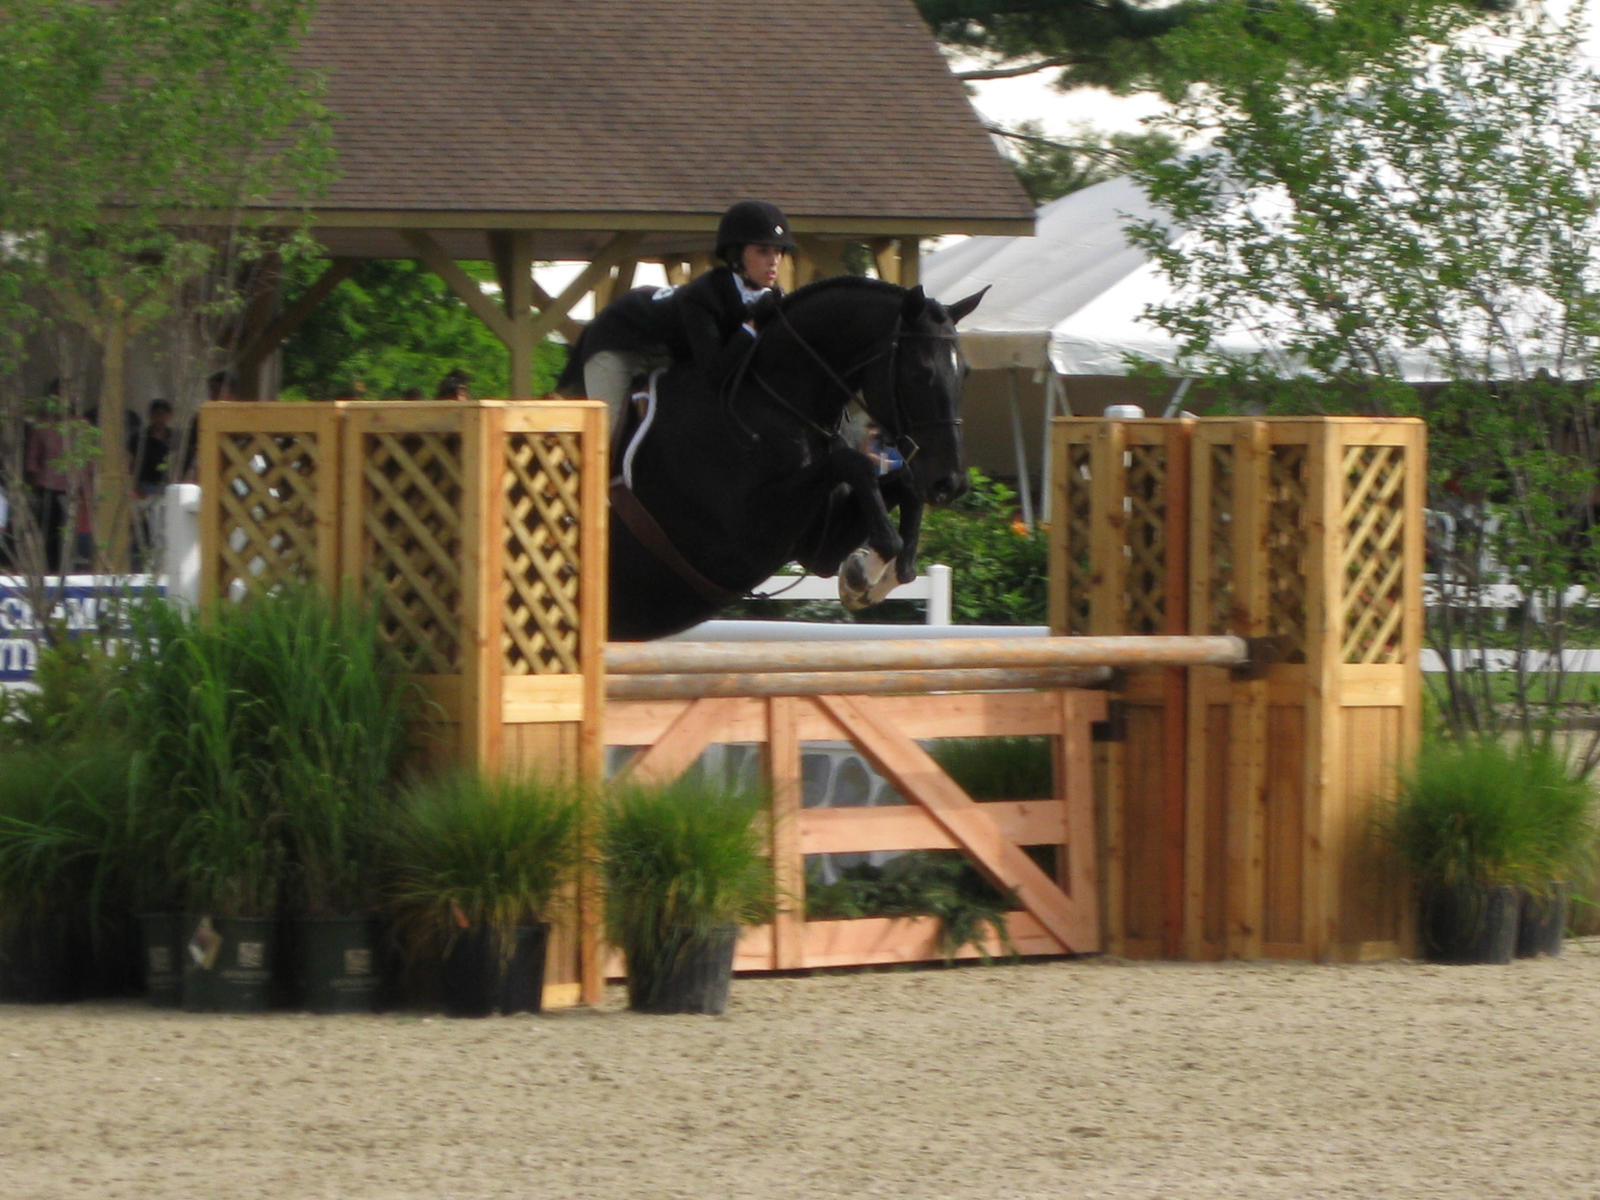 Black Horse Jumping Oxer by Hunterjumper25Black Horse Jumping